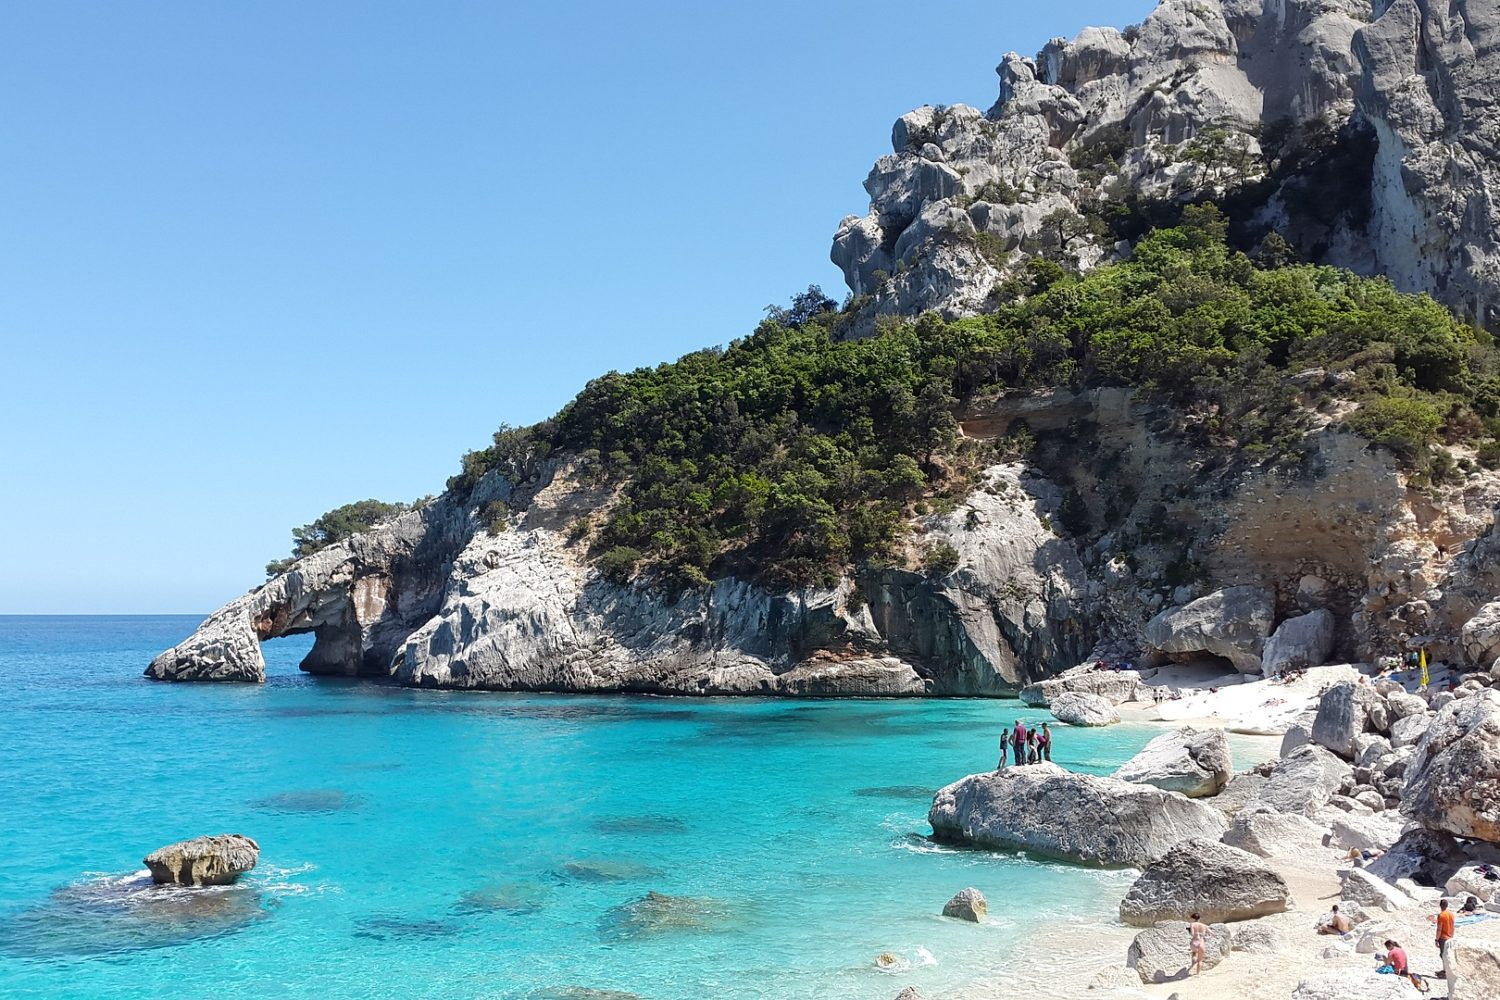 Crystal waters and beautiful beaches await you in Sardinia